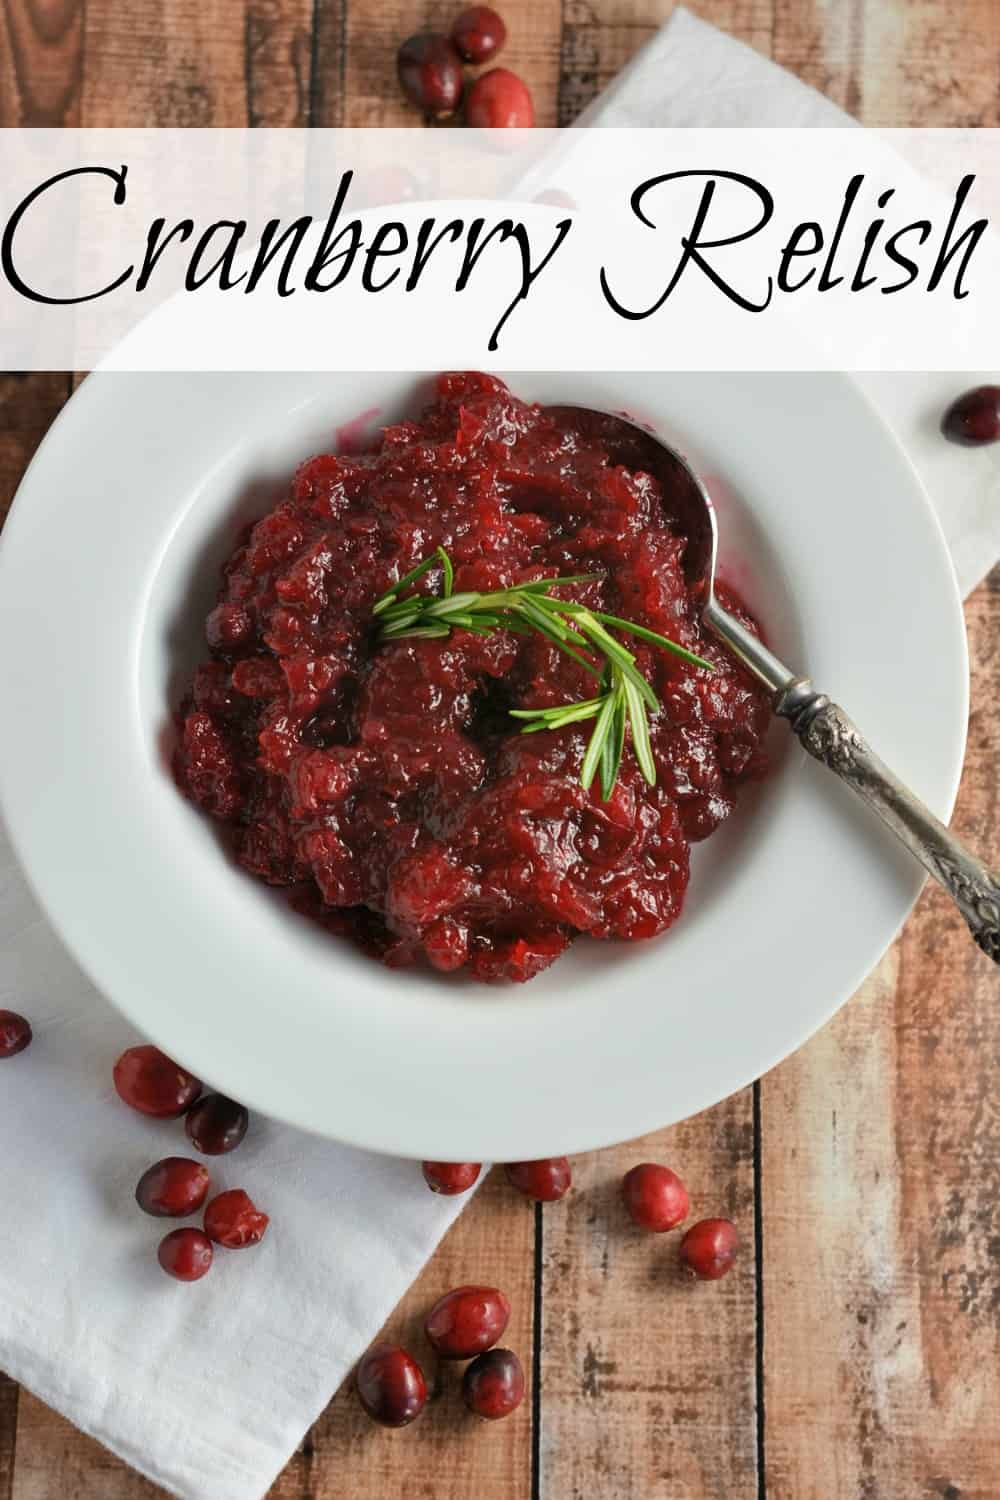 Homemade Cranberry Relish for turkey, pork or cranberry mayo!